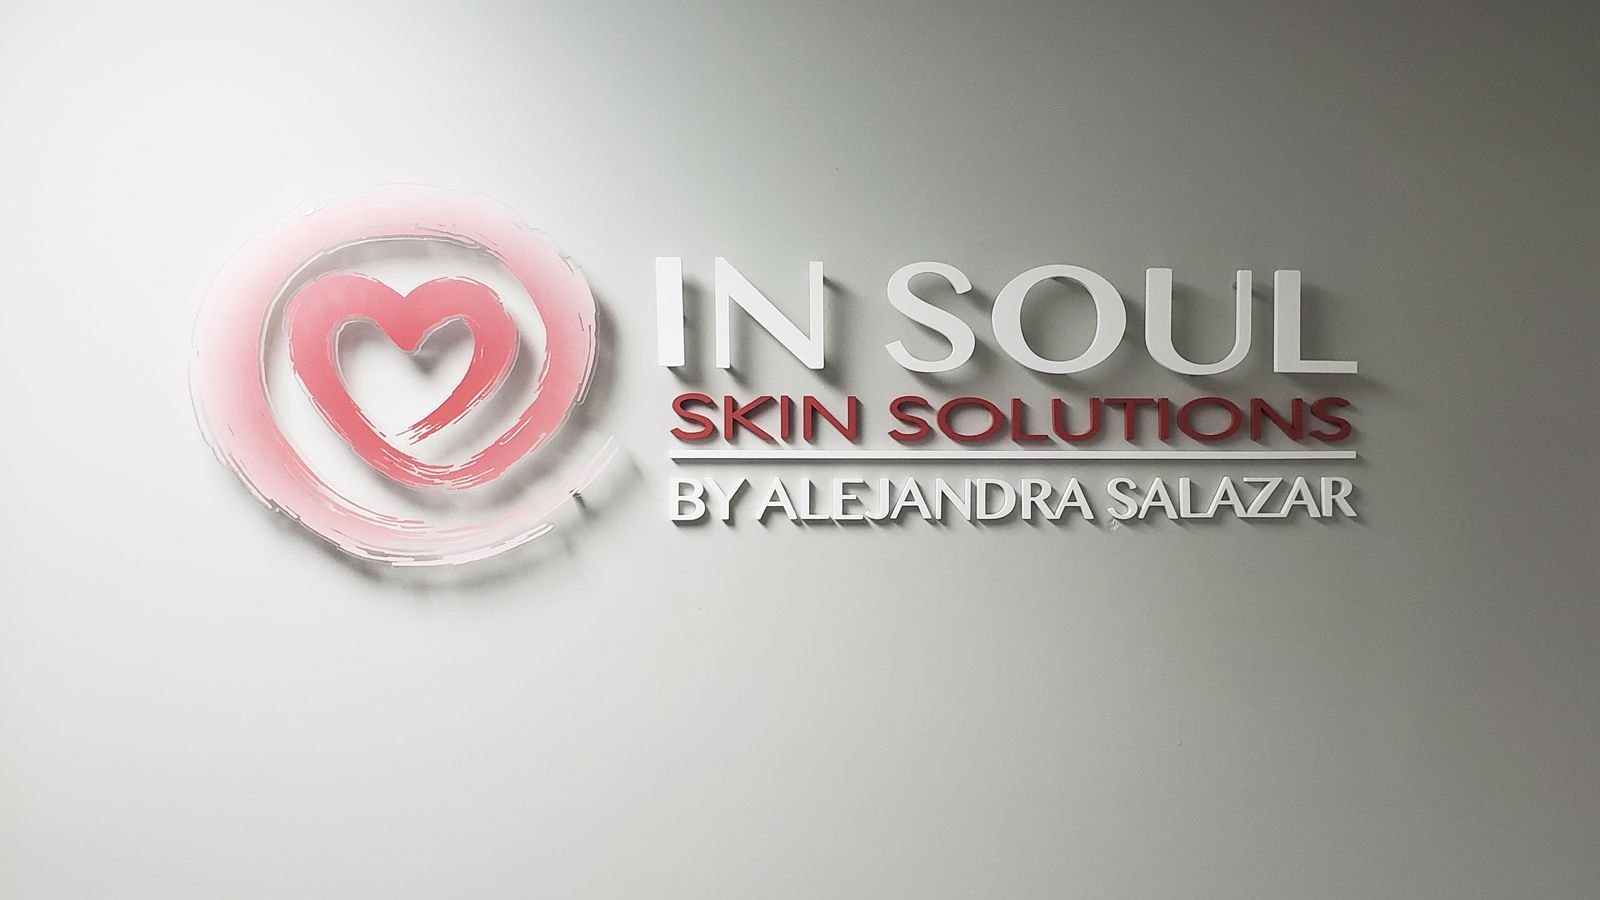 In Soul Skin Solutions 3d office sign with the company name and logo made of acrylic